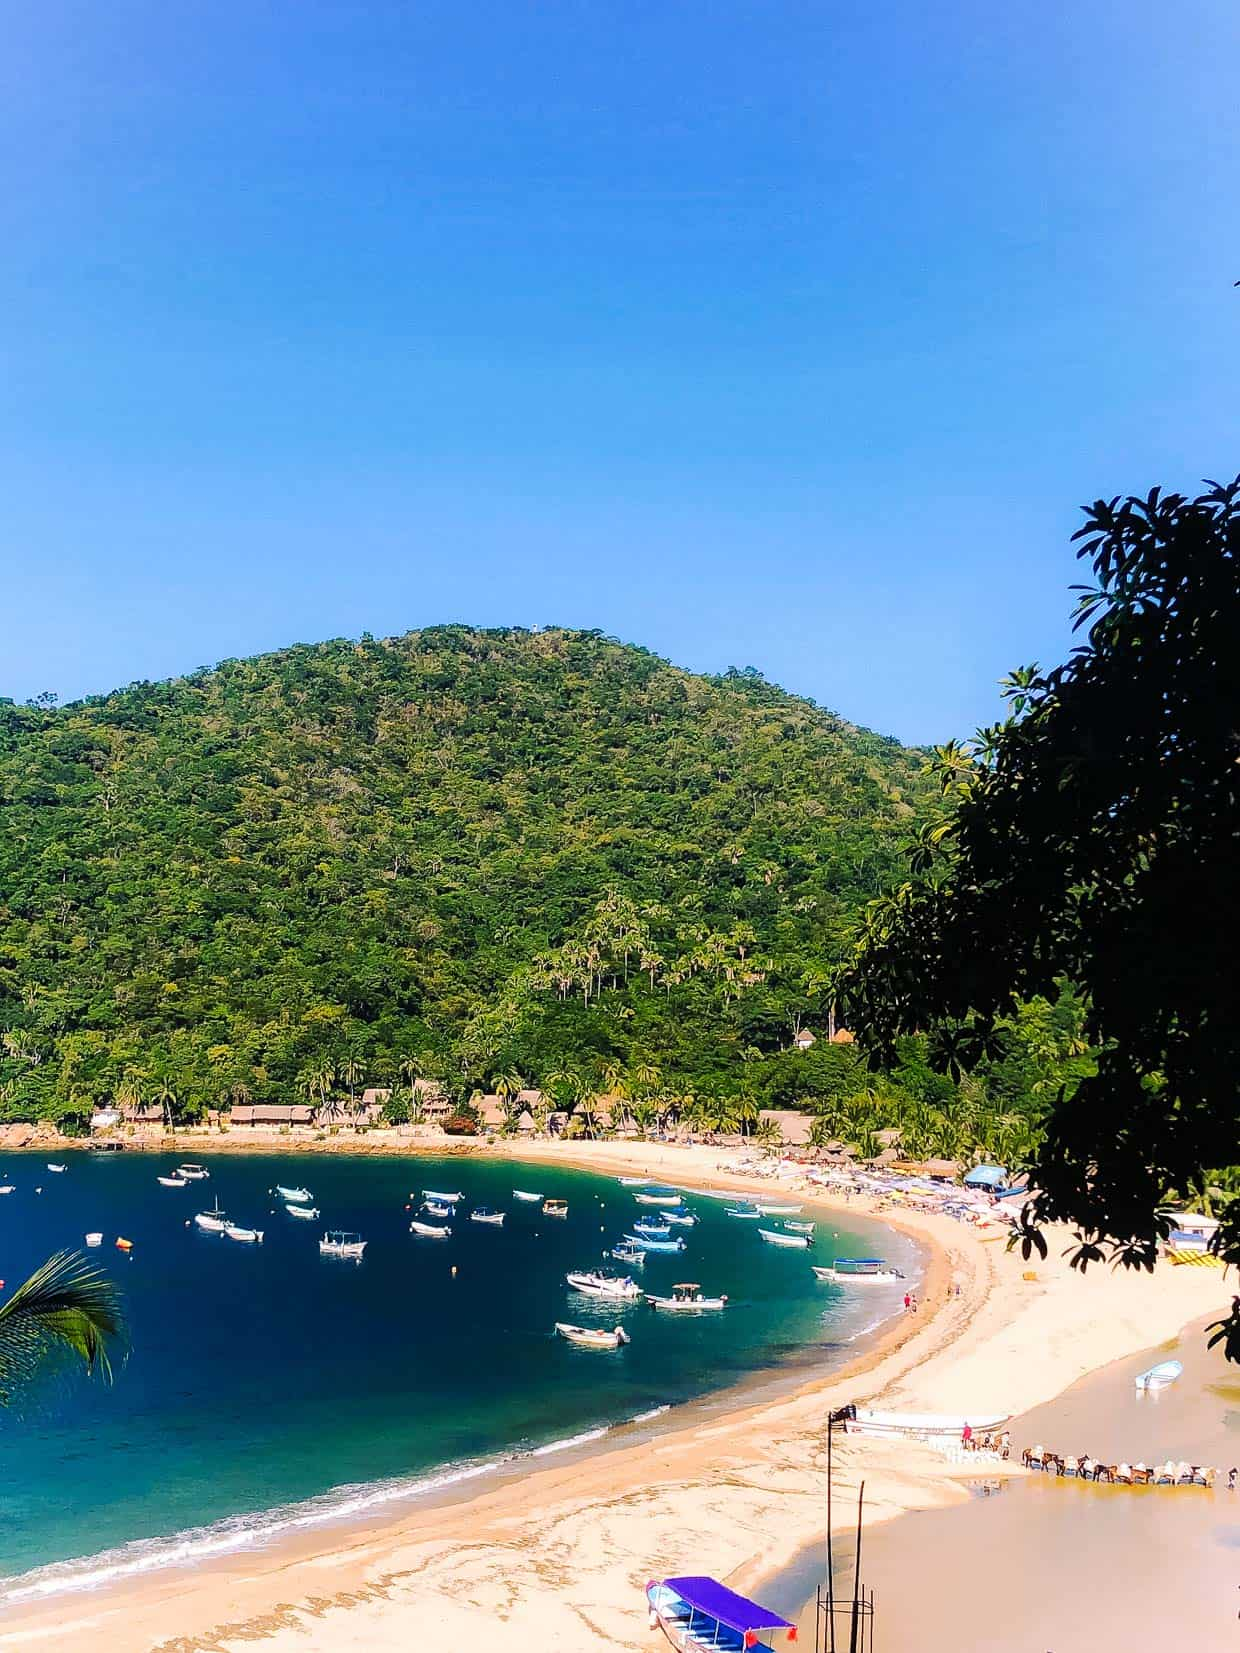 #ad Puerto Vallarta was one of the stops on a 7-day cruise to the Mexican Riviera with Princess Cruises.